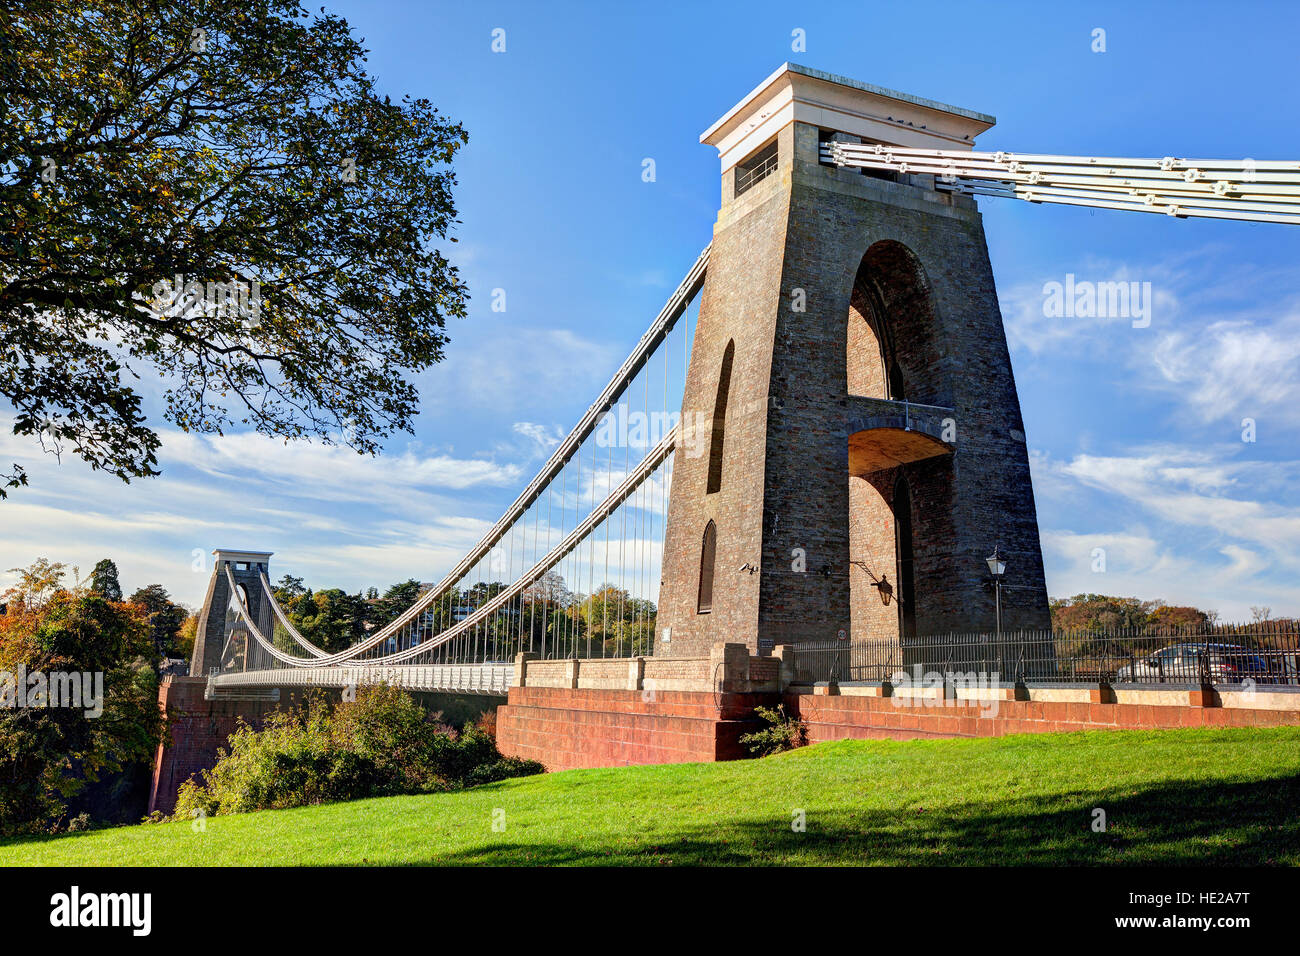 Daytime view of the Clifton Suspension Bridge in Bristol, England - Stock Image